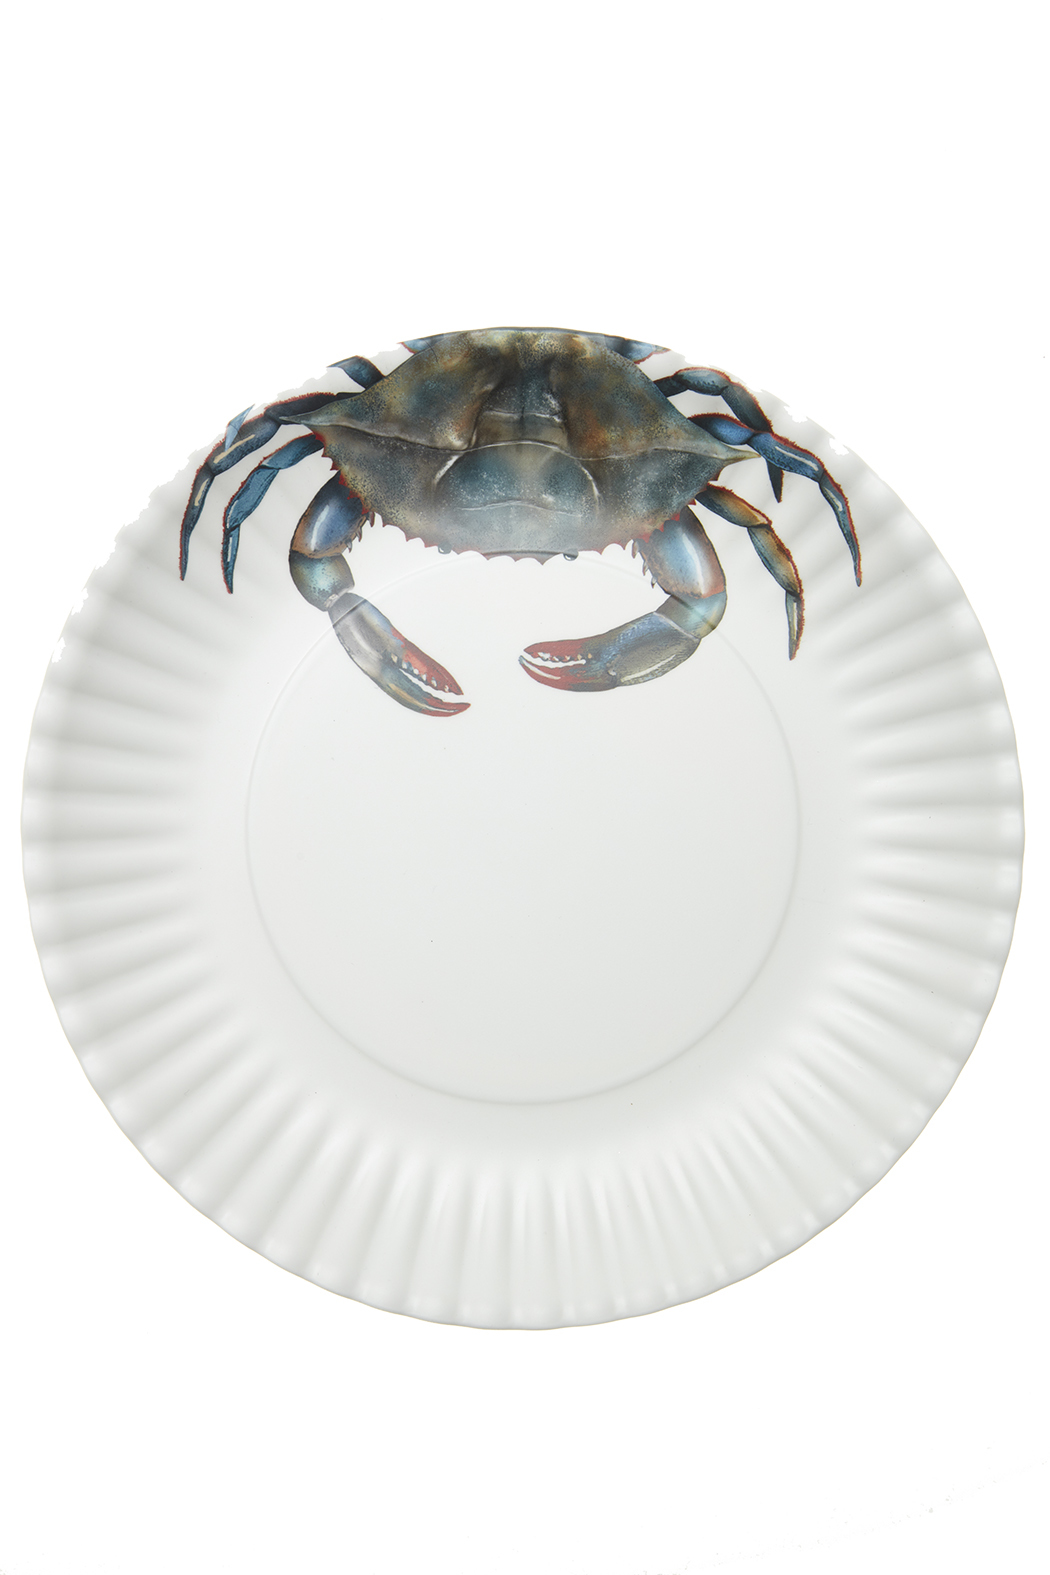 Mary Lake Thompson Crab Melamine Plate - Front Cropped Image  sc 1 st  Shoptiques & Mary Lake Thompson Crab Melamine Plate from Florida by The Coastal ...